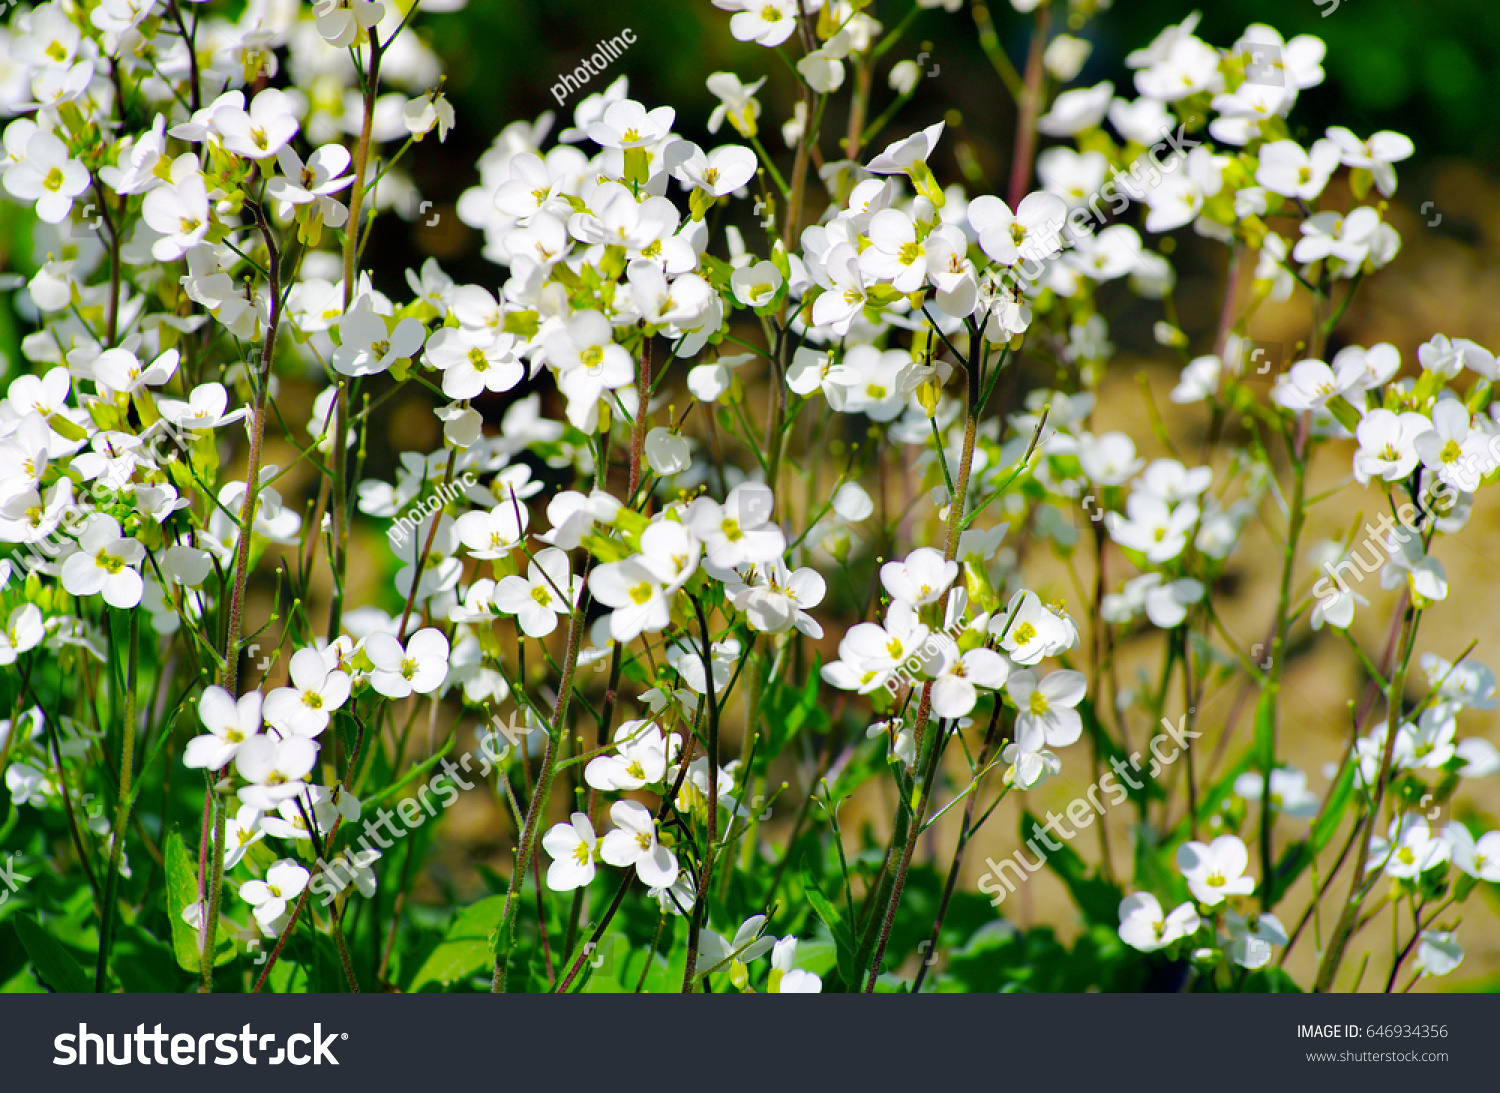 White meadow flowers green mood stock photo royalty free 646934356 white meadow flowers with green mood mightylinksfo